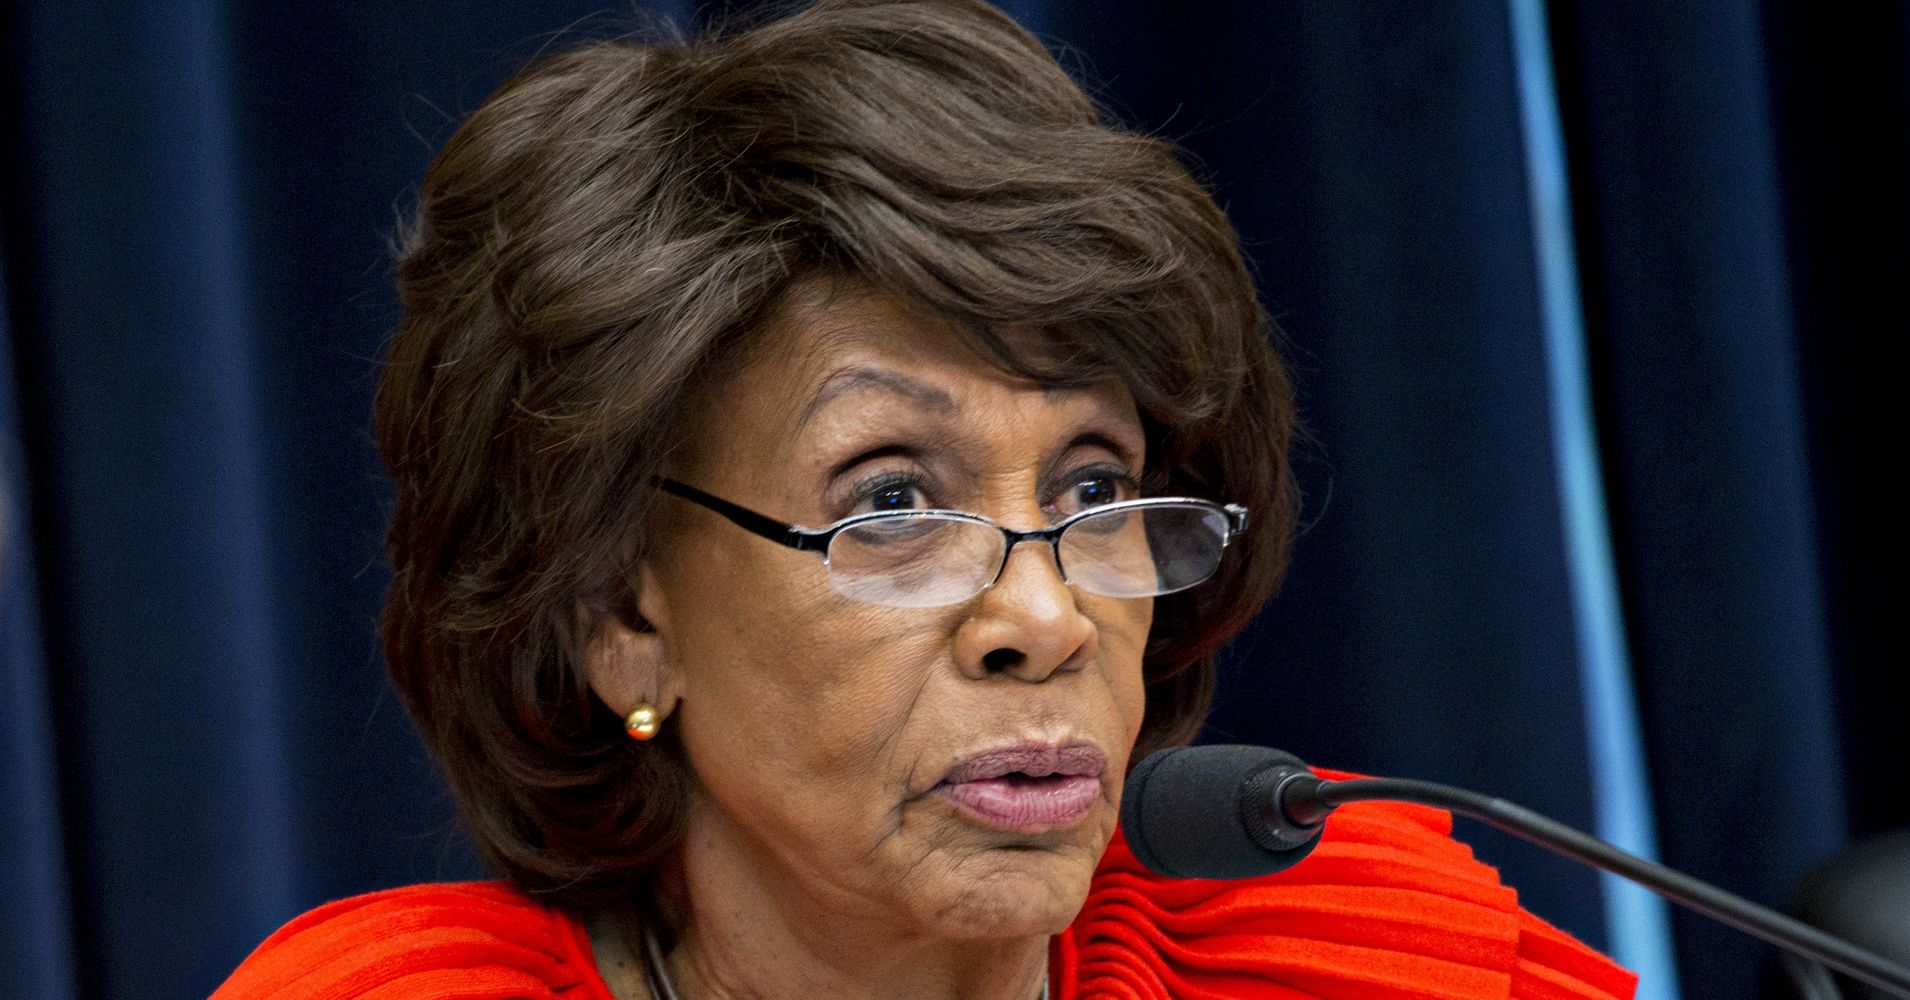 Maxine Waters On Trump's Latest Attack: I Am Not Intimidated By 'Don The Con Man'